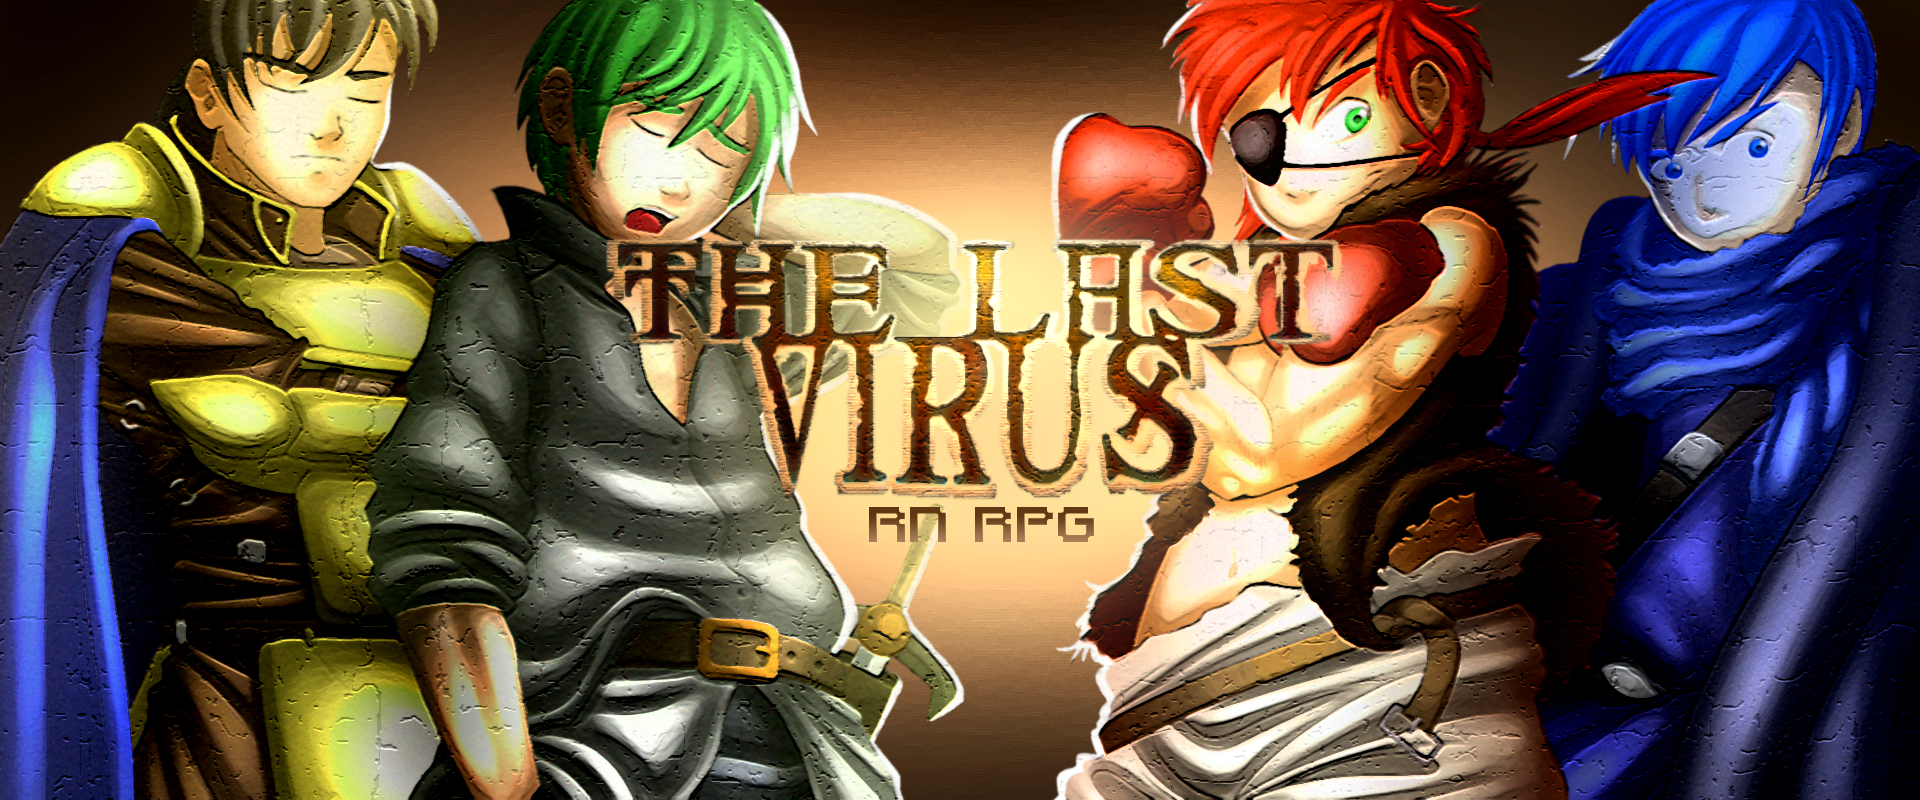 rpg The_last_virus_by_nazozr-d8i8plg